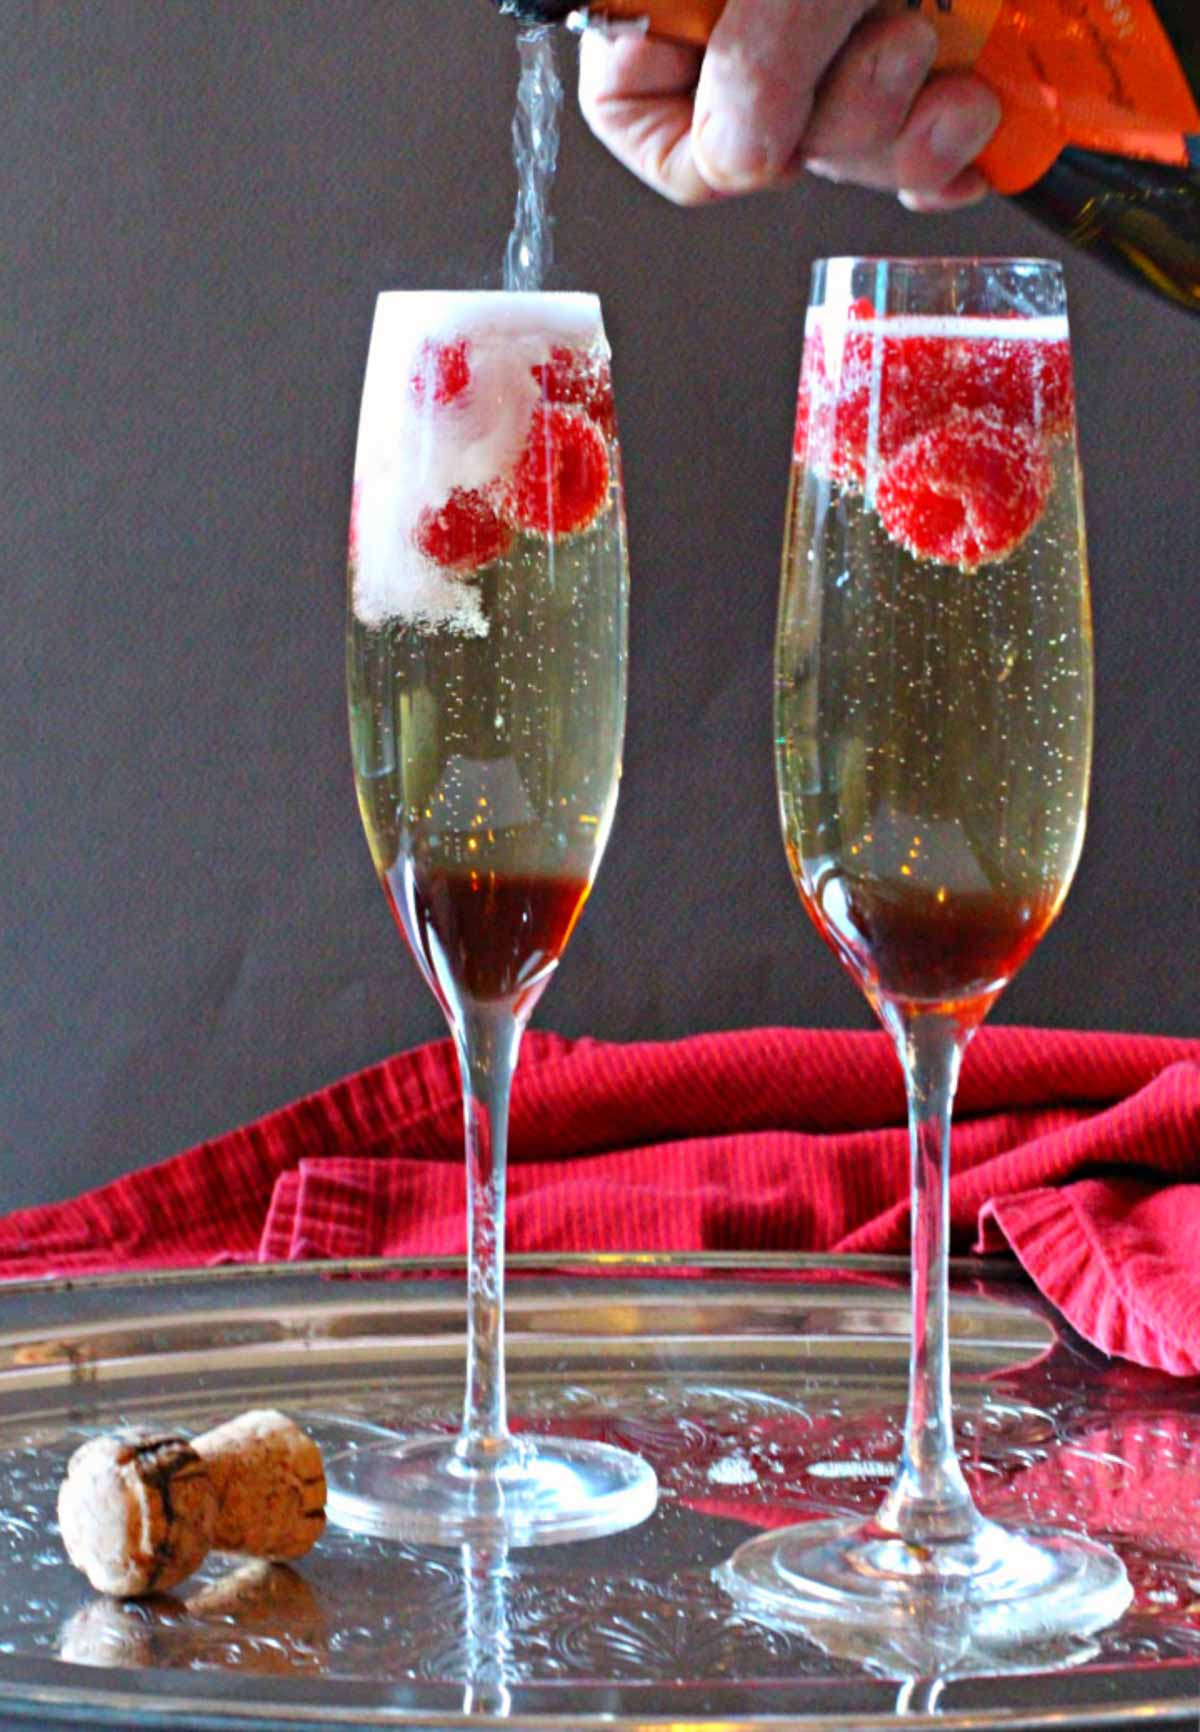 Prosecco Christmas Cocktail made with Chambord Liqueur and fresh raspberries. Served in Champagne flutes.